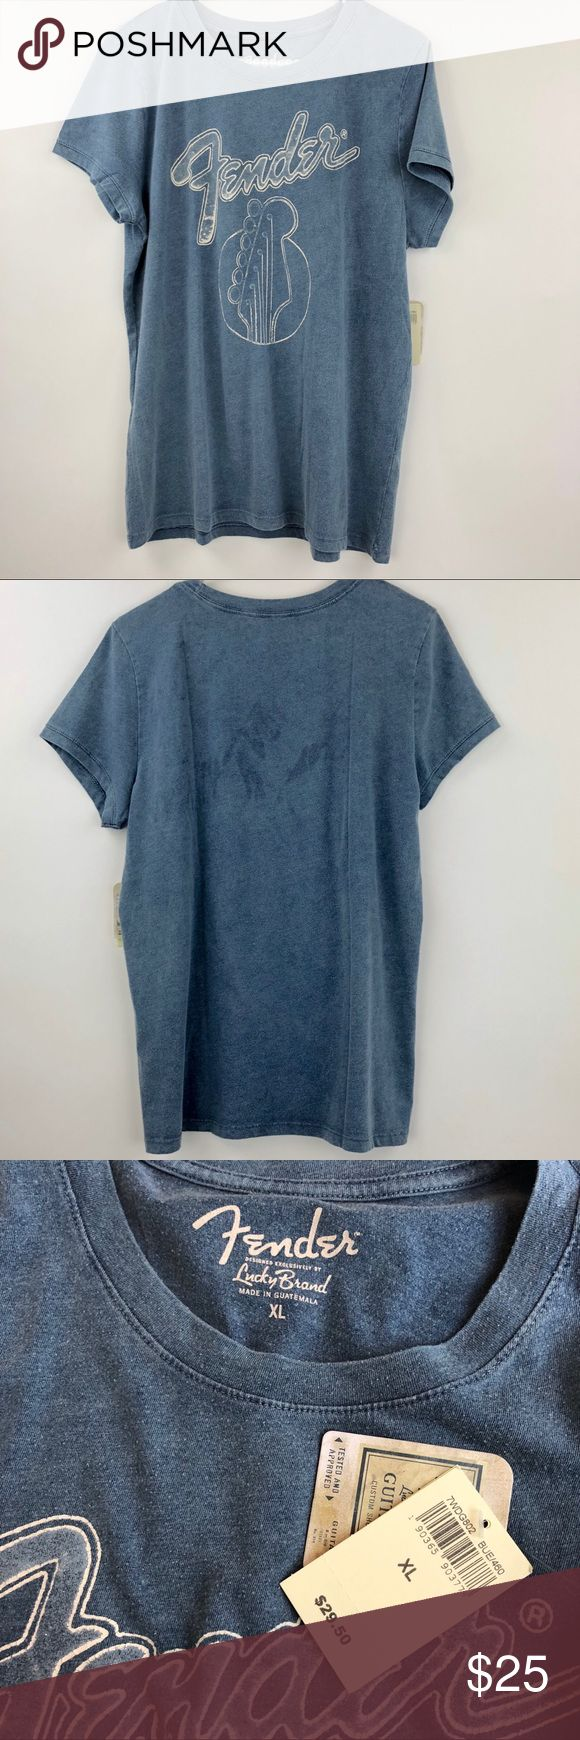 """Lucky Brand Fender Guitar Graphic Tee Size XL Lucky Brand Fender Guitar Graphic T Shirt Womens Size XL  Pit to Pit: 19""""  Length: 27""""  Condition: New with tags. Lucky Brand Tops Tees - Short Sleeve"""